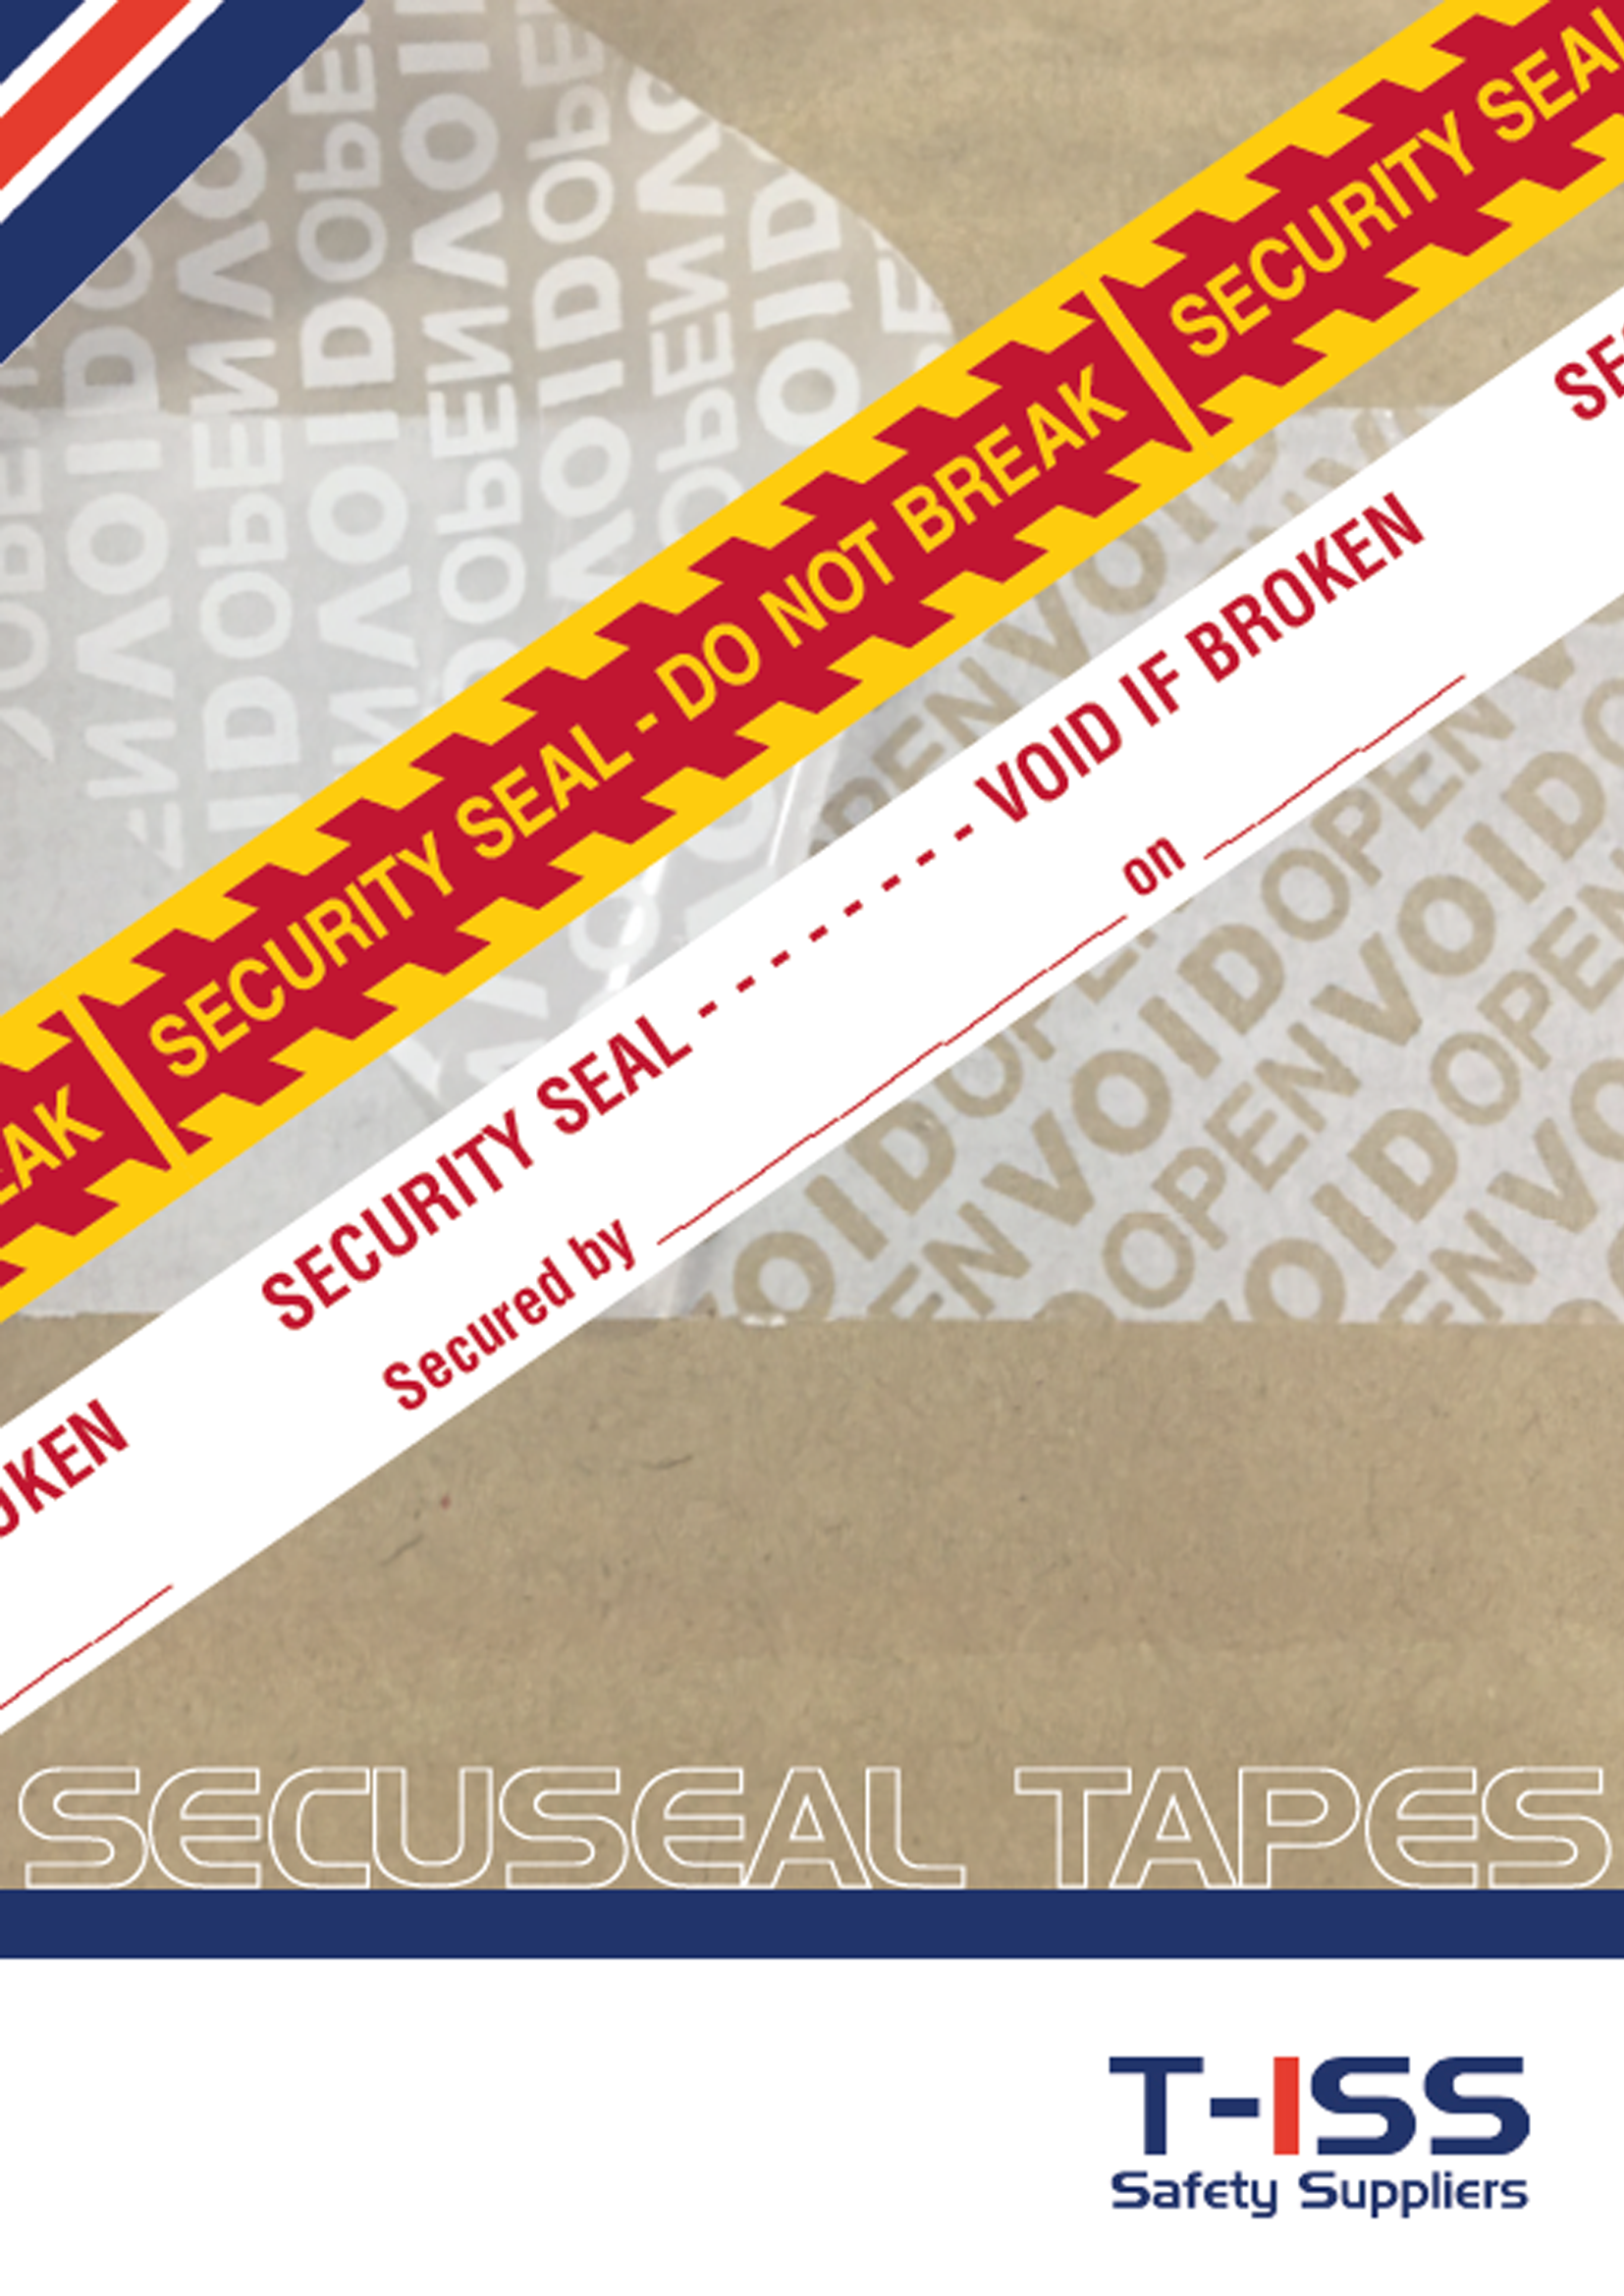 Flyer SecuSeal by T-ISS Safety Suppliers